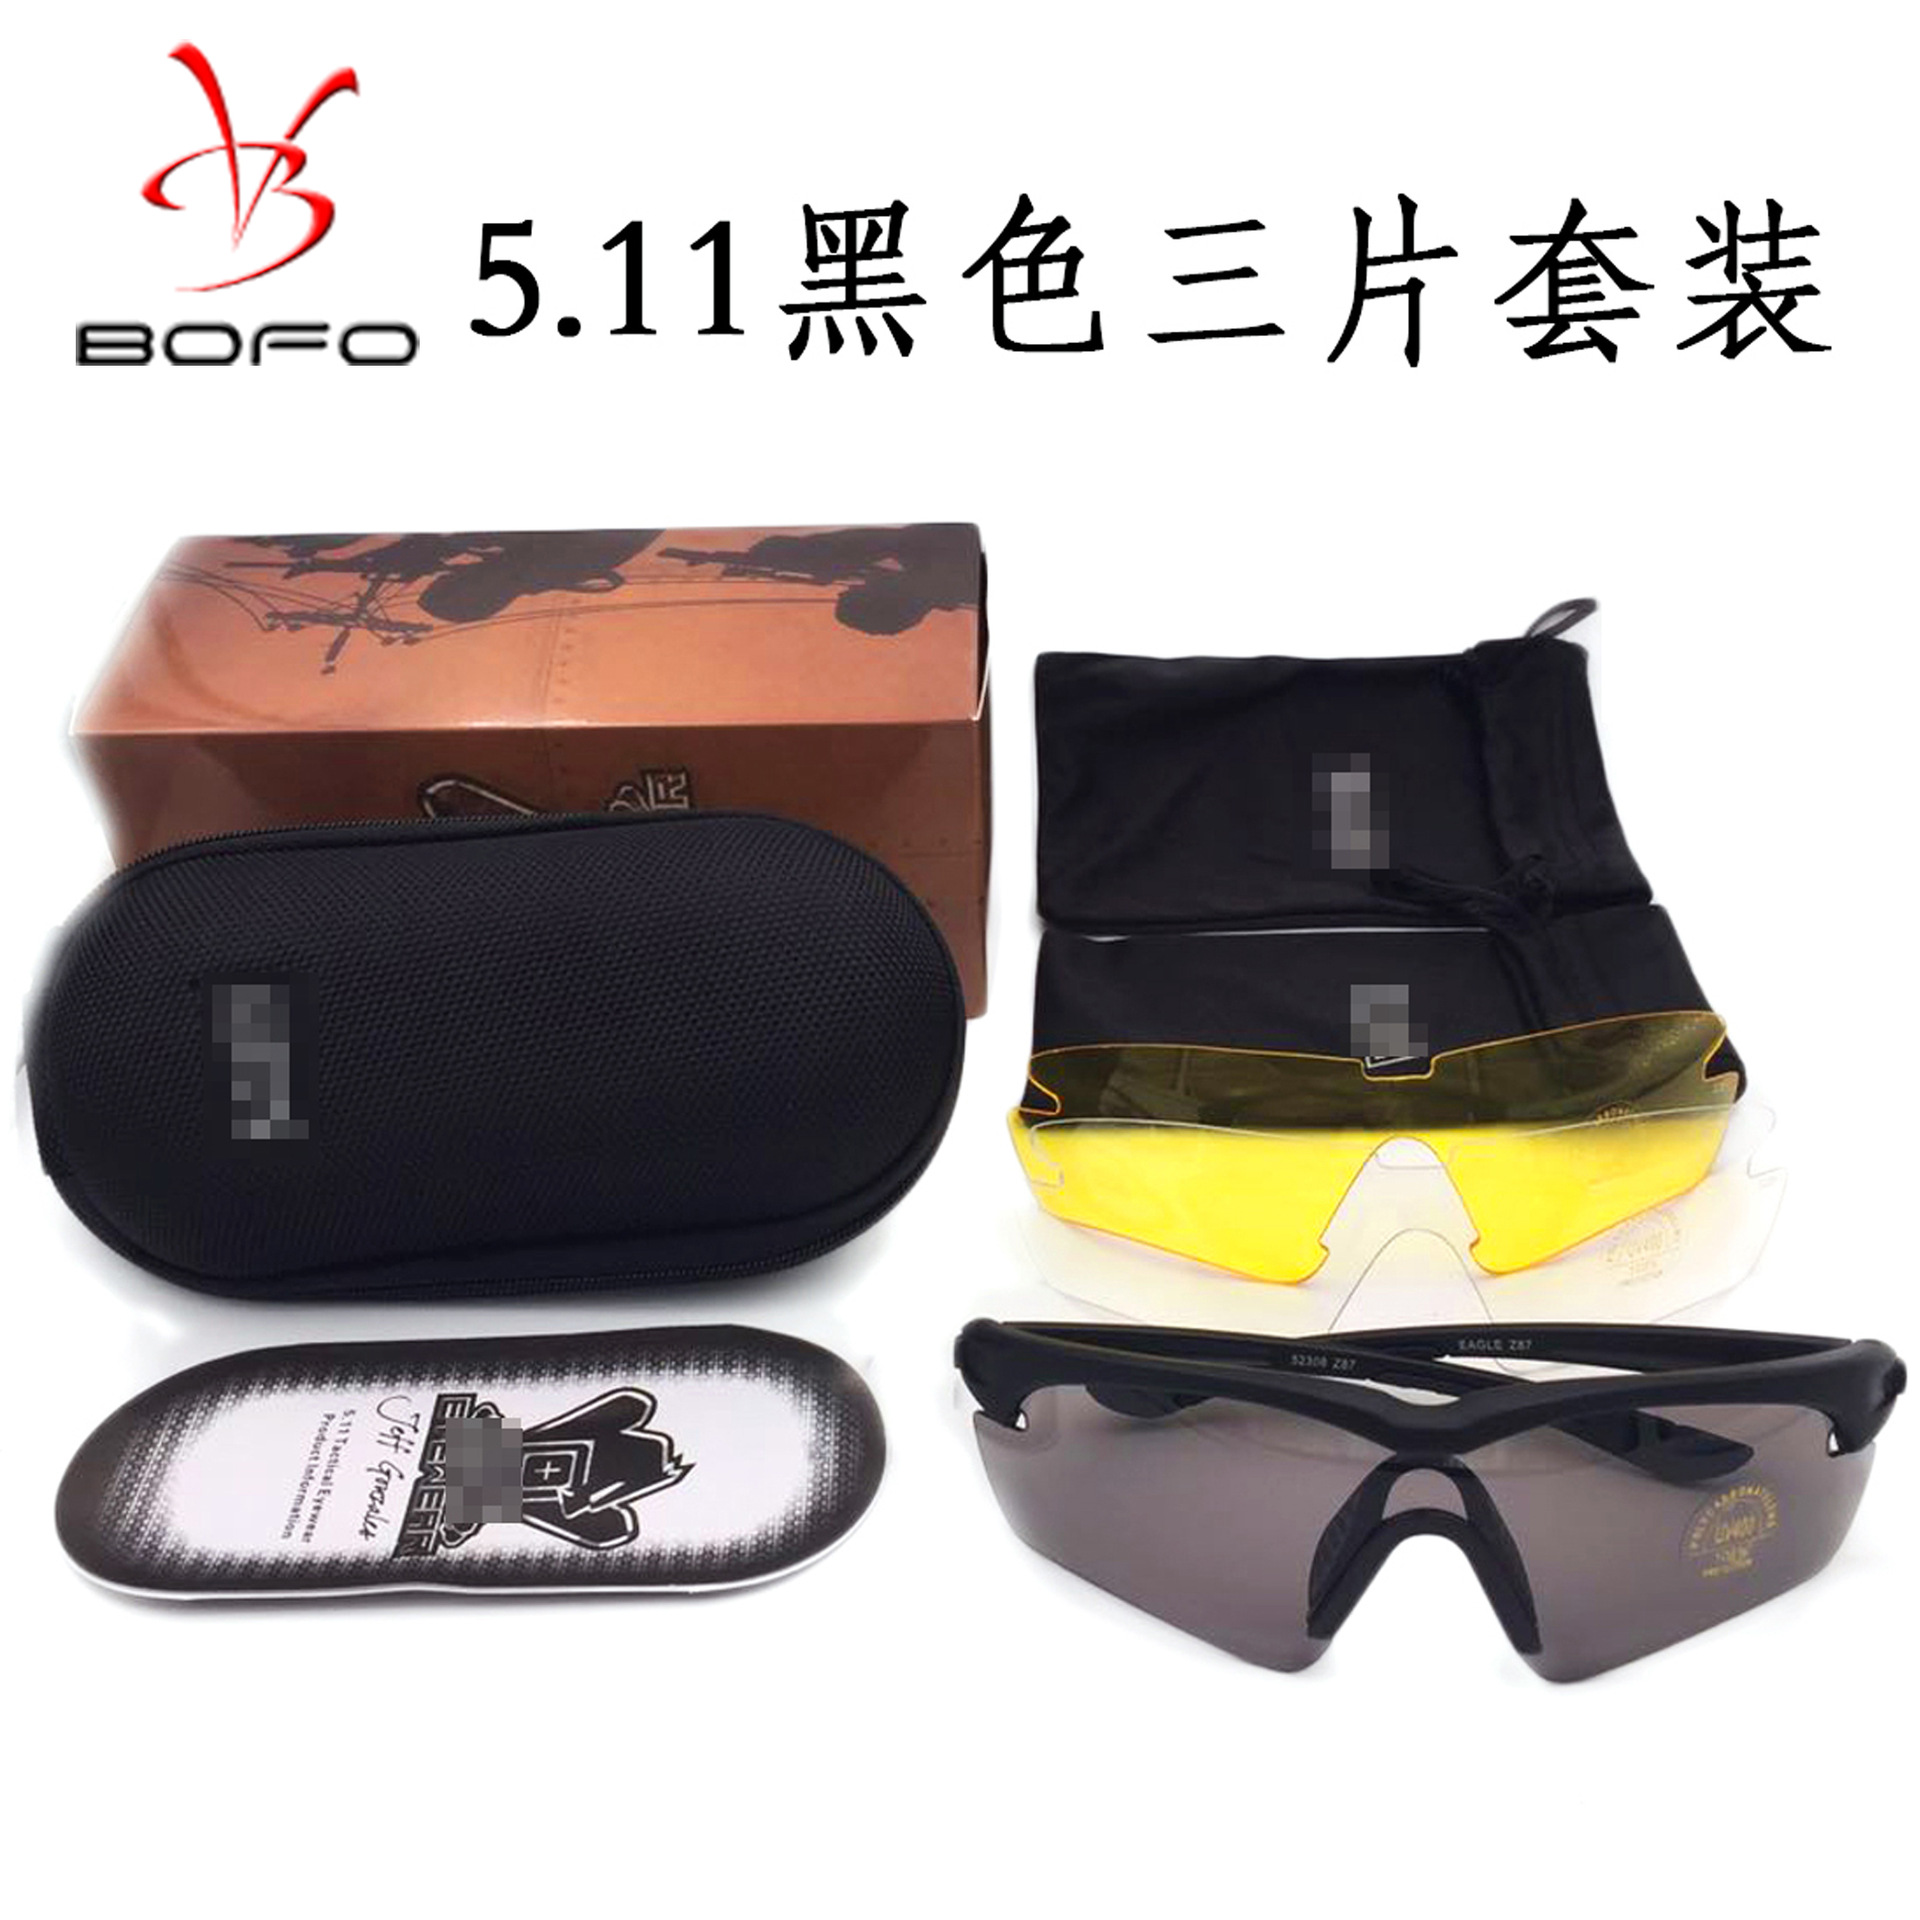 5.11 Tactical Eye Protection Glasses Bicycle Glass Outdoor Sports Impact Resistance Shooting Goggles Army Fans Mirror